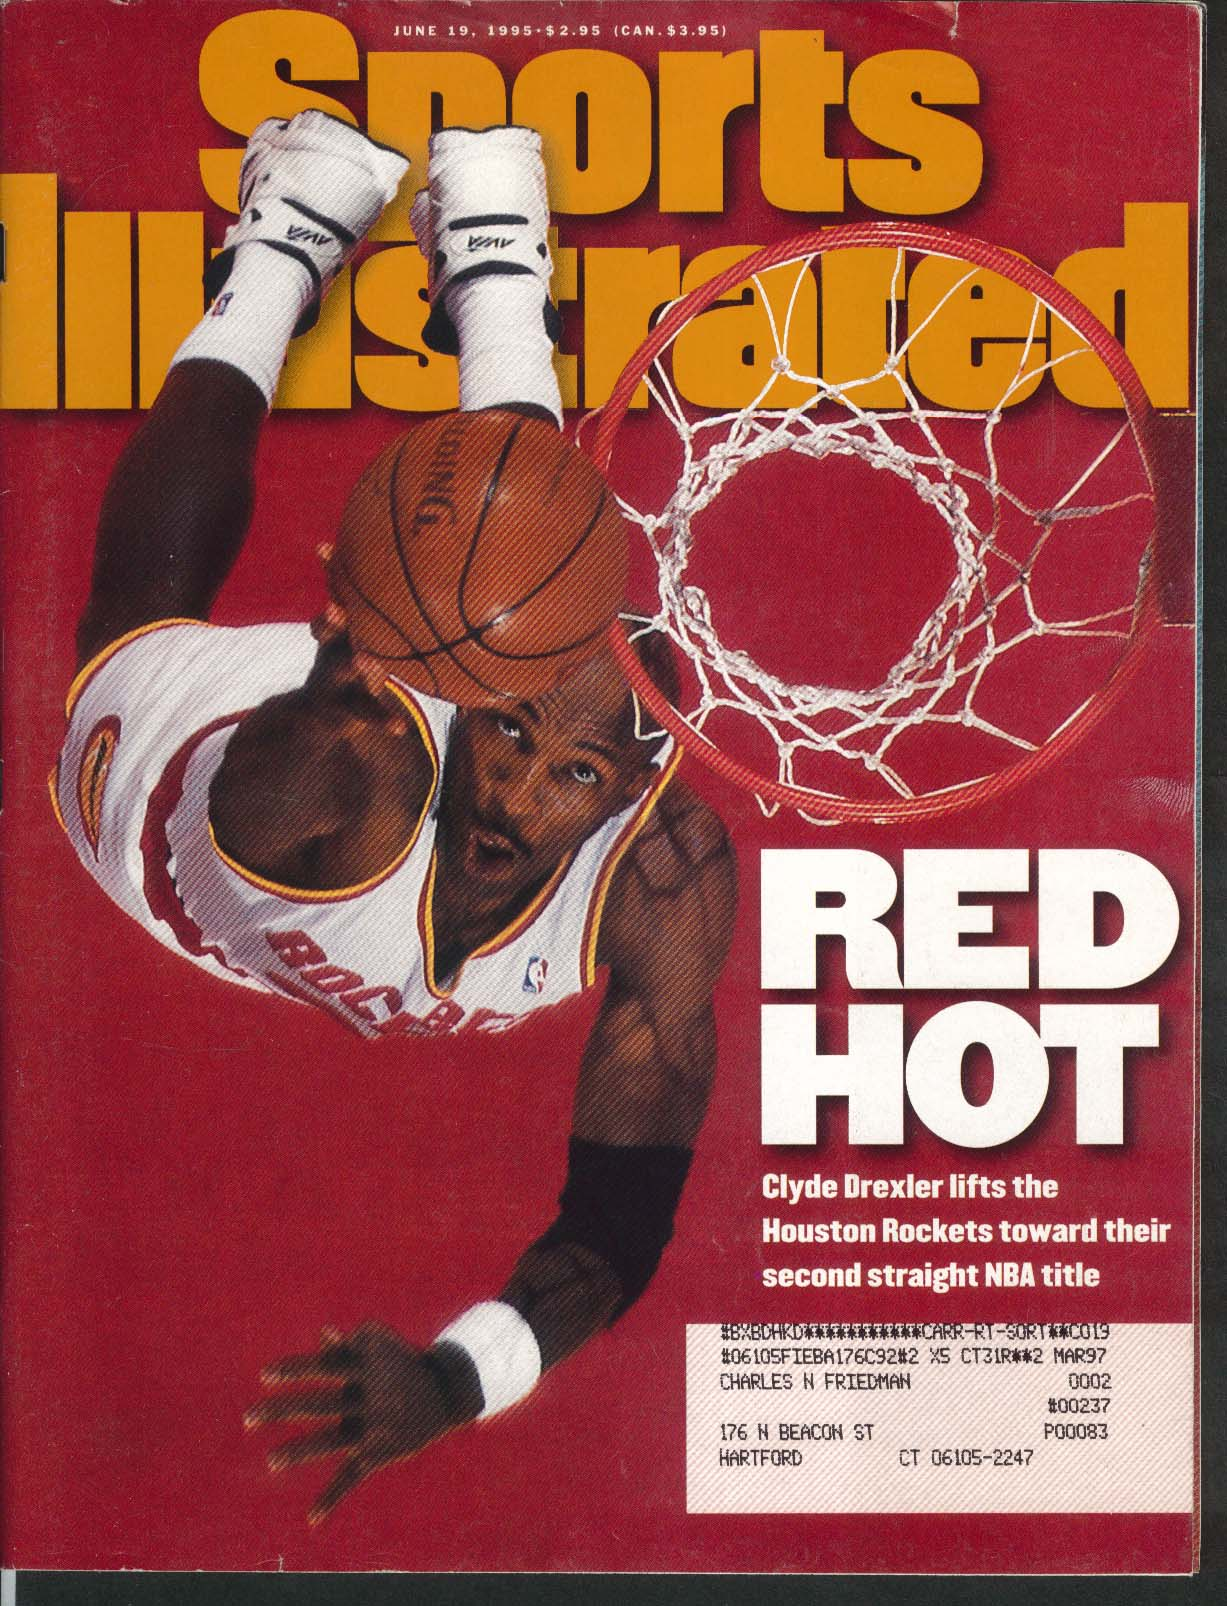 SPORTS ILLUSTRATED Clyde Drexler Steffi Graf Thomas Muster Felipe Alou 6/19 1995